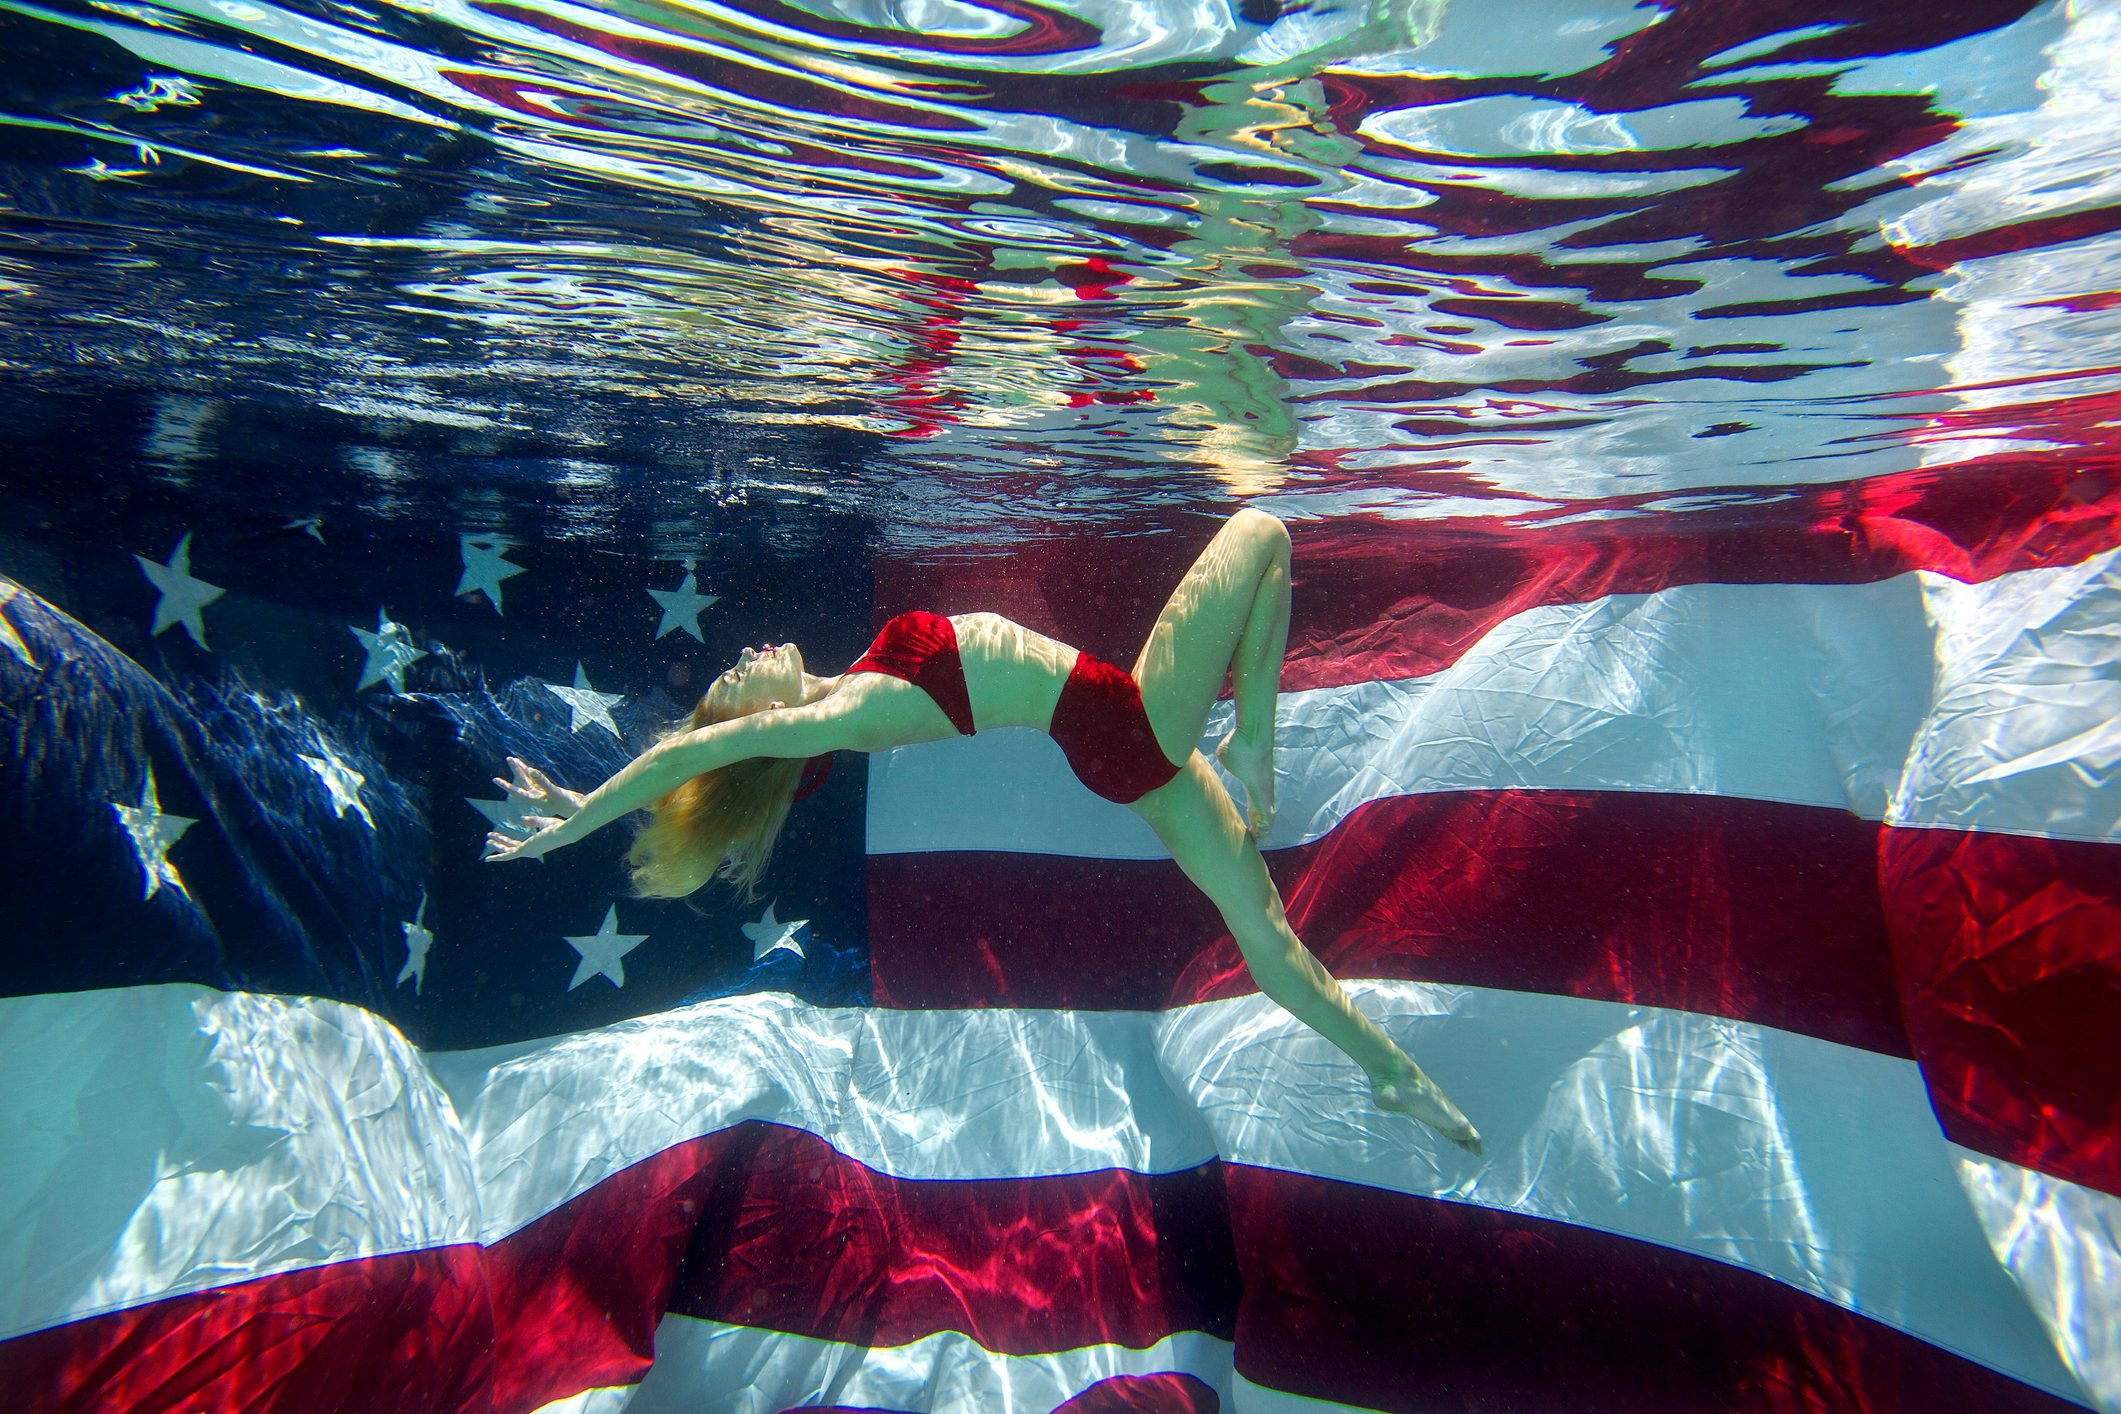 Portrait of a woman in a bikini underwater in a swimming pool with an American flag in the background in San Diego, California.